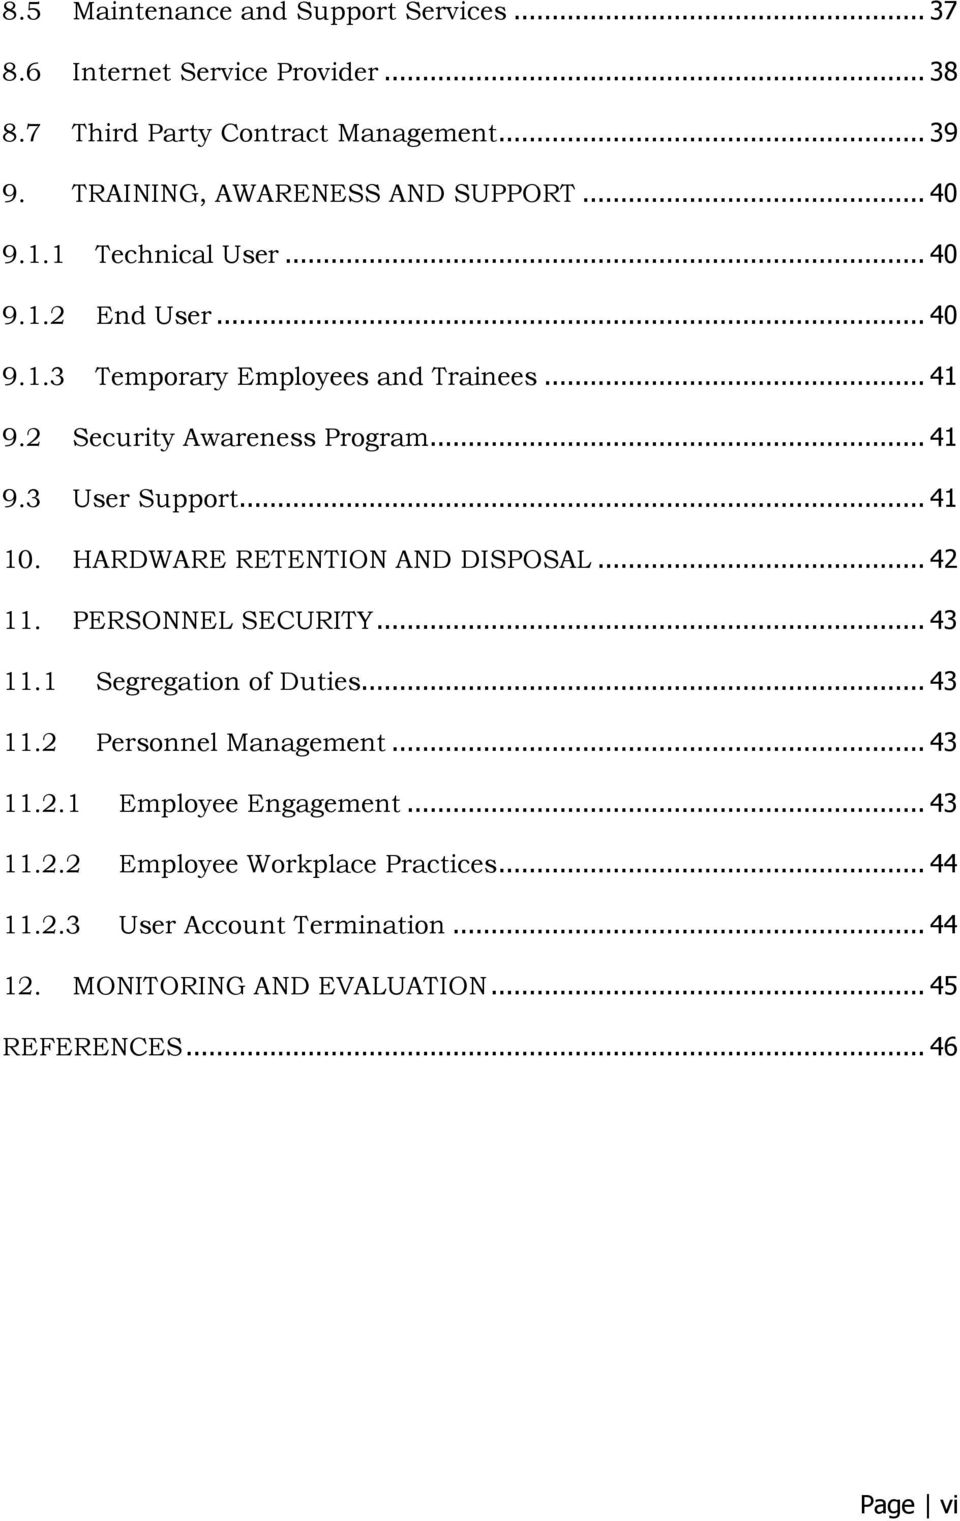 .. 41 10. HARDWARE RETENTION AND DISPOSAL... 42 11. PERSONNEL SECURITY... 43 11.1 Segregation of Duties... 43 11.2 Personnel Management... 43 11.2.1 Employee Engagement.